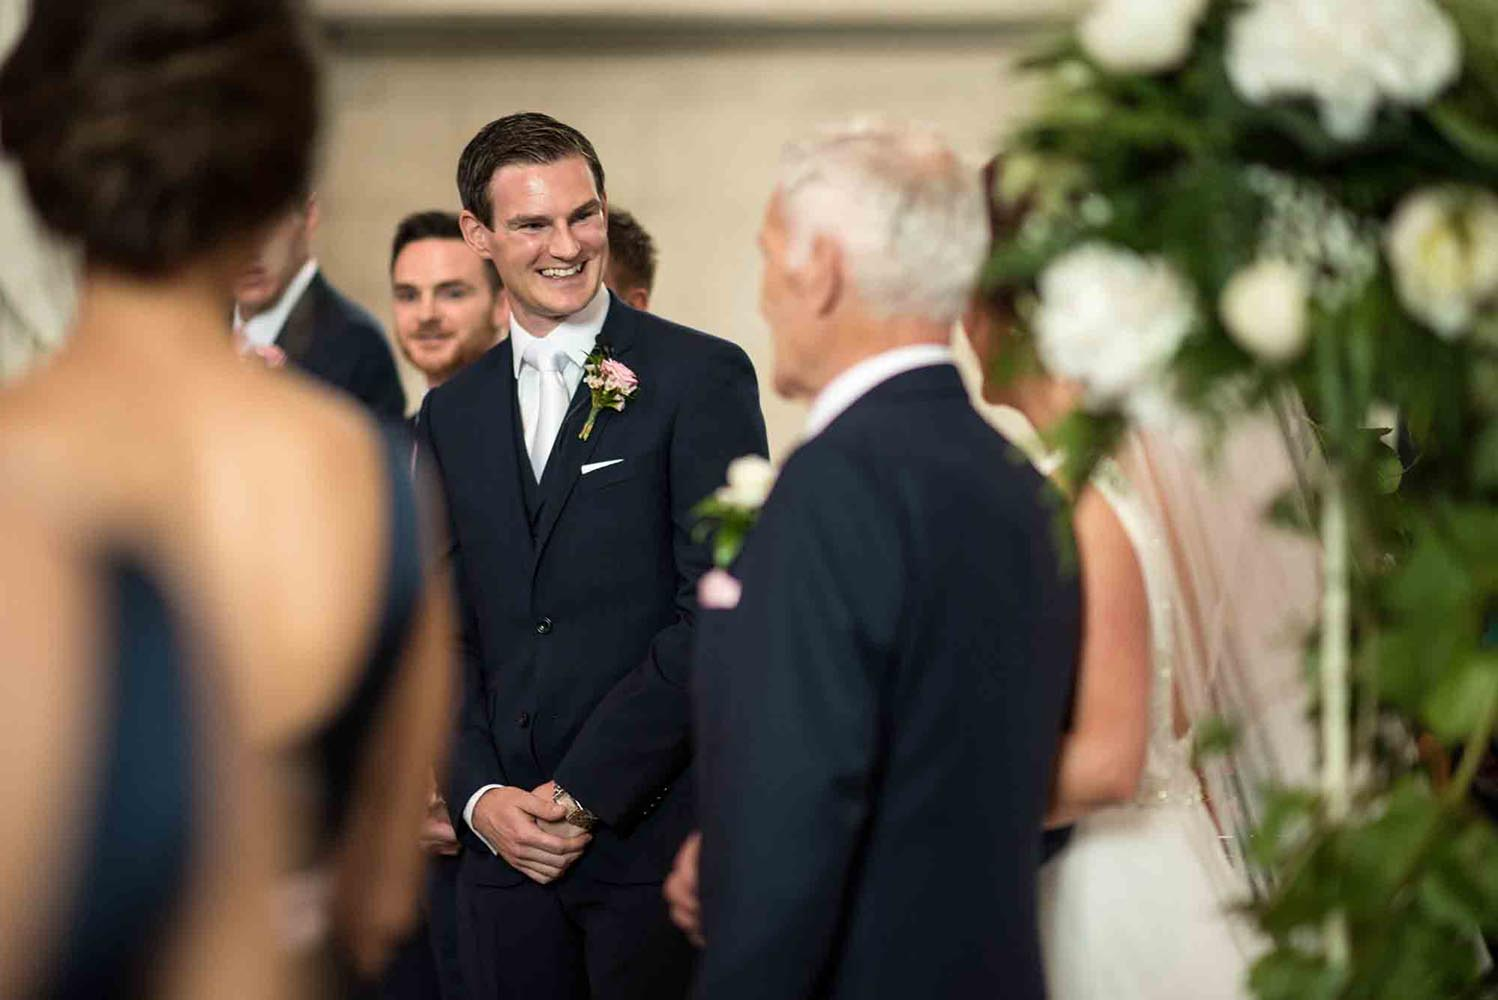 Groom greets his bride at the top of the aisle